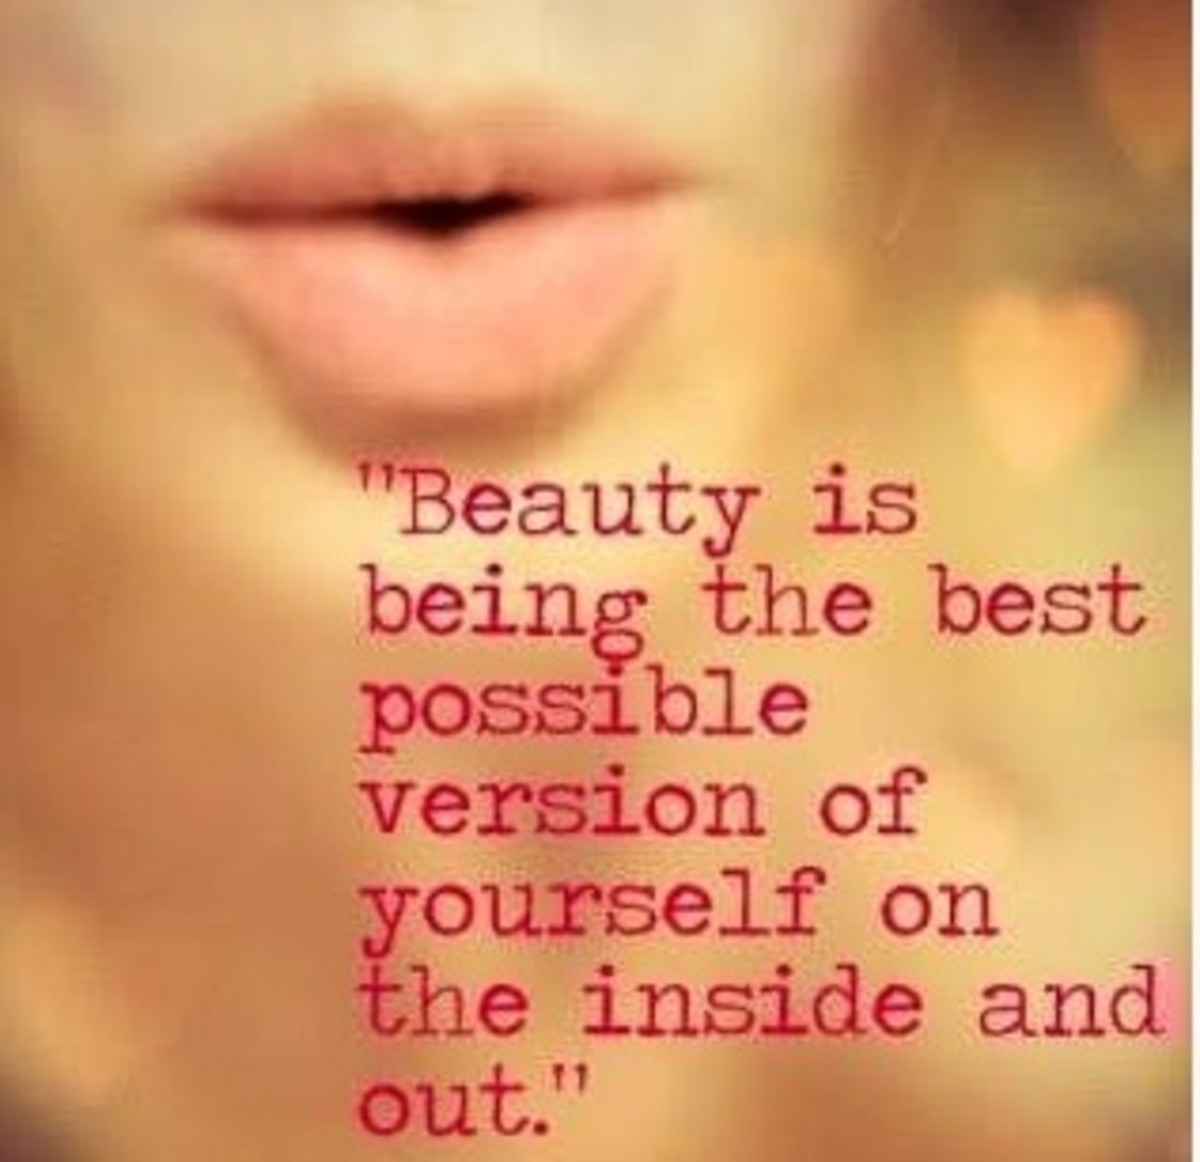 possible version of yourself, inside and out.